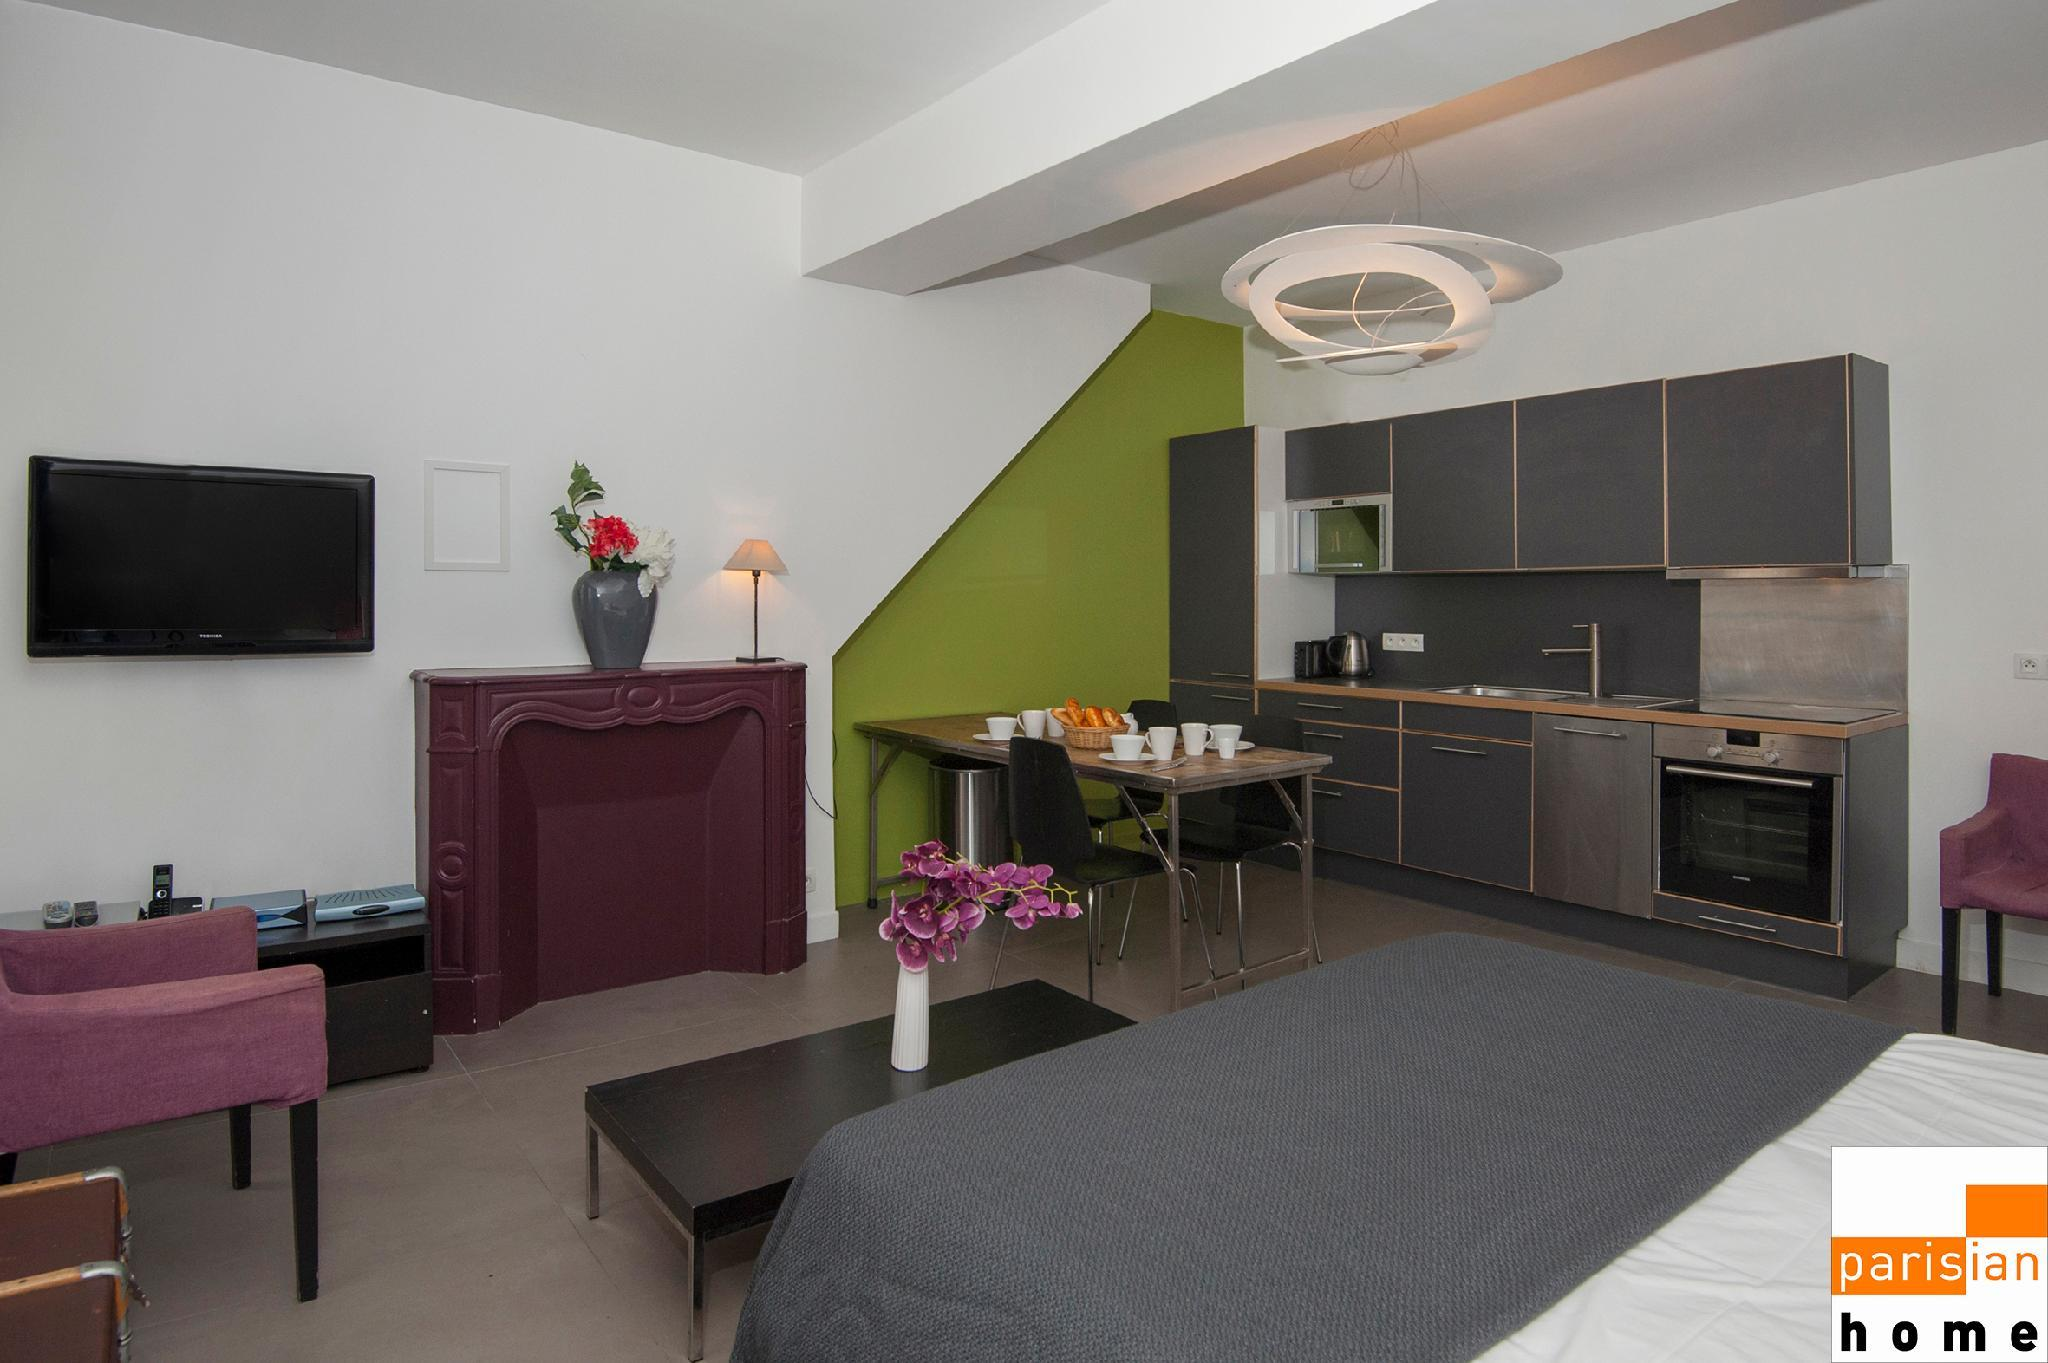 102409 - Comfortable apartment for 4 people in the Montorgueil area